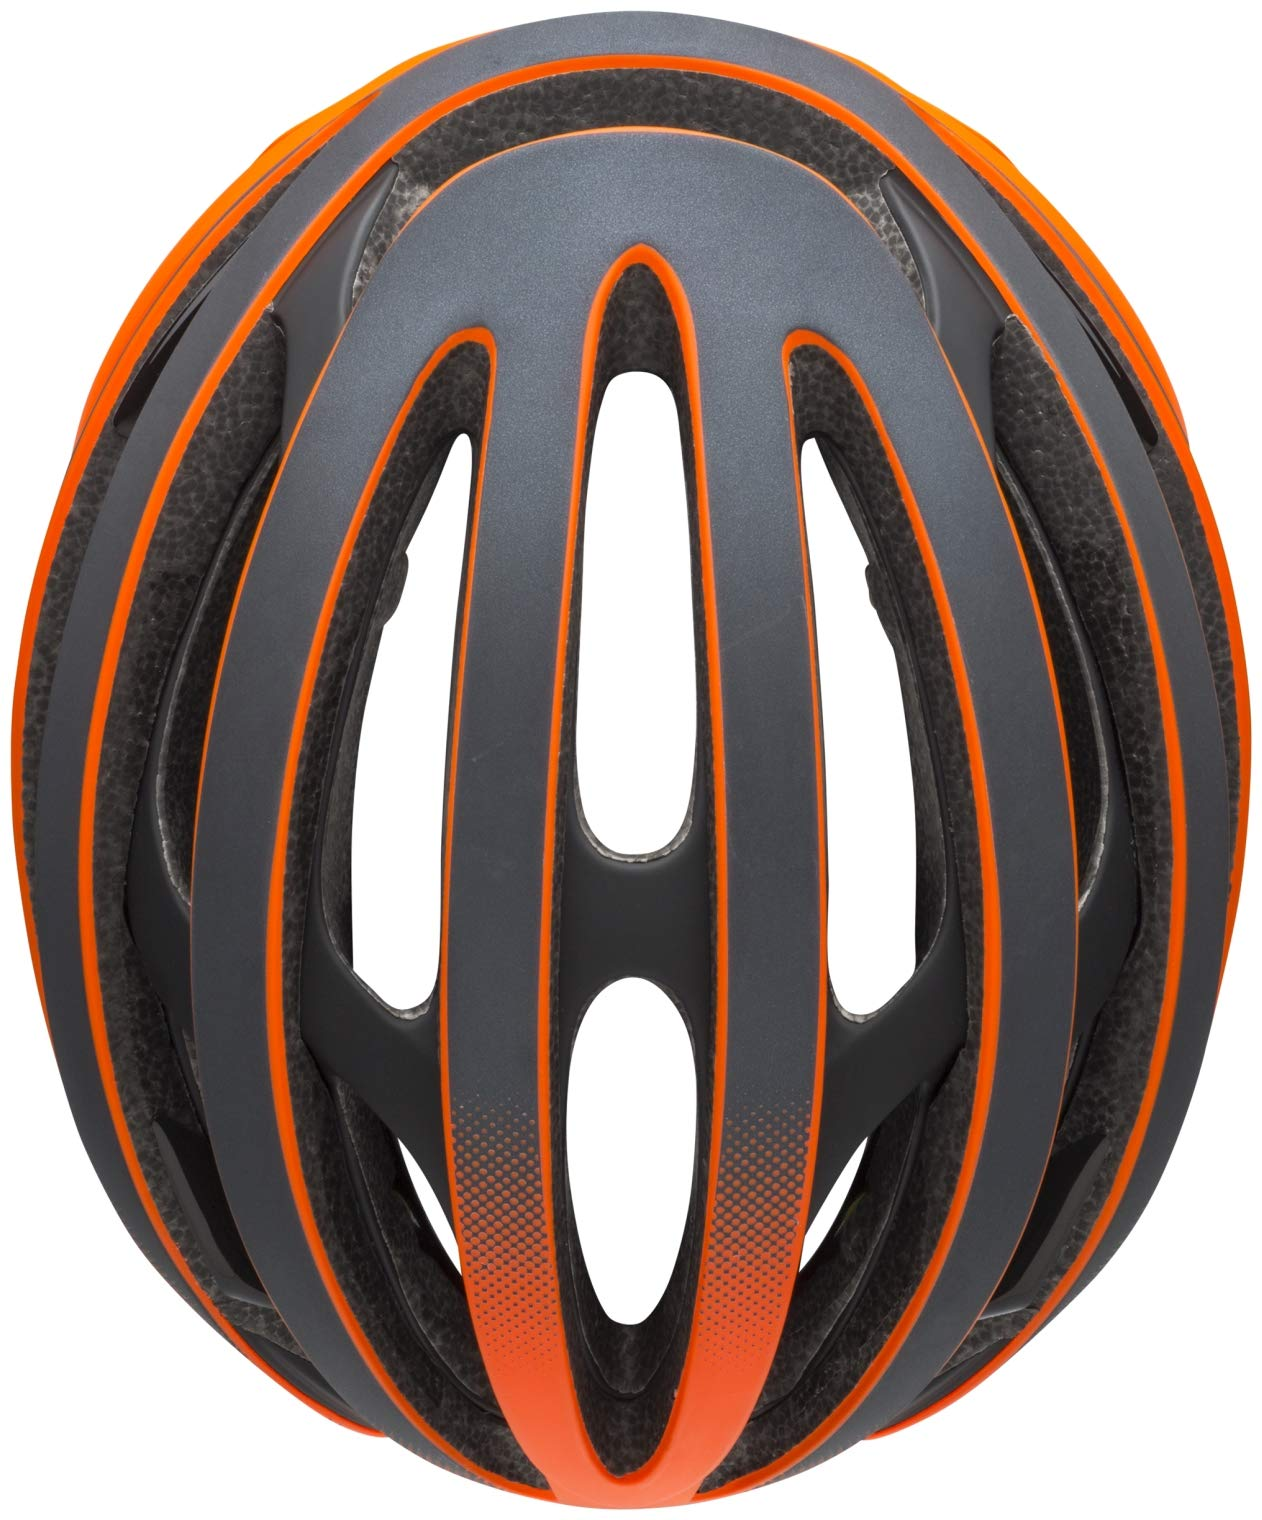 Bell Z20 Ghost MIPS Cycling Helmet - Ghost Matte Orange Reflective Small by Bell (Image #3)